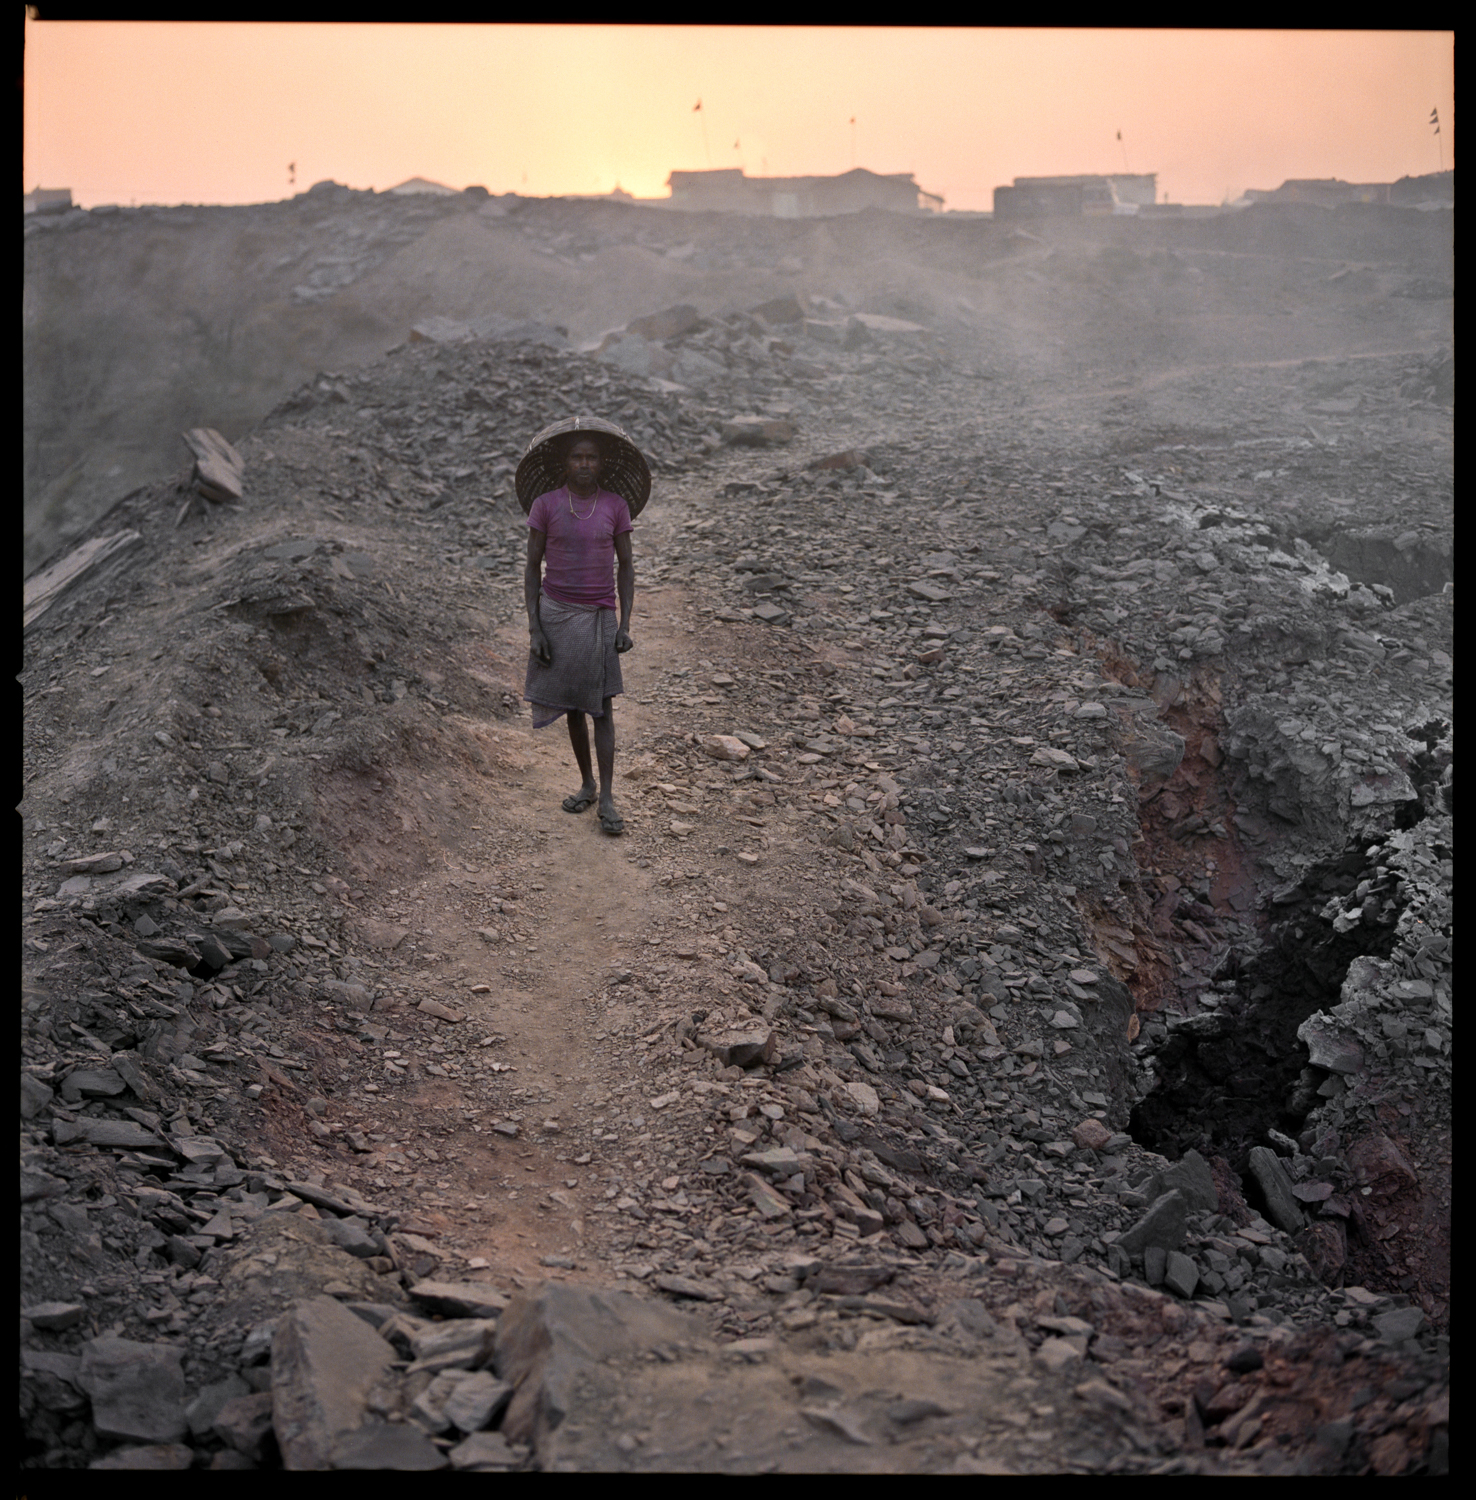 THE BURNING CITY JHARIA, INDIA | 2009-2012   Ever since I was a child, I have heard that Eskimos have dozens of different words to describe subtle nuances of white. When I arrived in Jharia, I couldn't help wondering the same thing about the inhabitants of the largest mining area in India. Could these people have developed a special vocabulary for all the nuances of black? Roughly 400,000 live in Jharia. The lunar-like soil hasn't produced vegetation for a long time and won't be doing so any time soon. But the main danger for local inhabitants does not come from the black dust that is permanently floating in their environment. The danger is deeper and it is developing under their feet in the heart of coal seams. Bad management of the mines has led to uncontrolled underground fires. Over more than a century, millions of tons of coal have burnt up. It is equivalent to a volcano growing under Jharia. Toxic gas vapours spread into the atmosphere, the ground is sinking and houses are starting to crack. Sometimes flames burst up by the roadside. The imminence of a human disaster is very real. The Indian government is aware of this but doesn't seem to want to free up enough funds to relocate the population at risk.